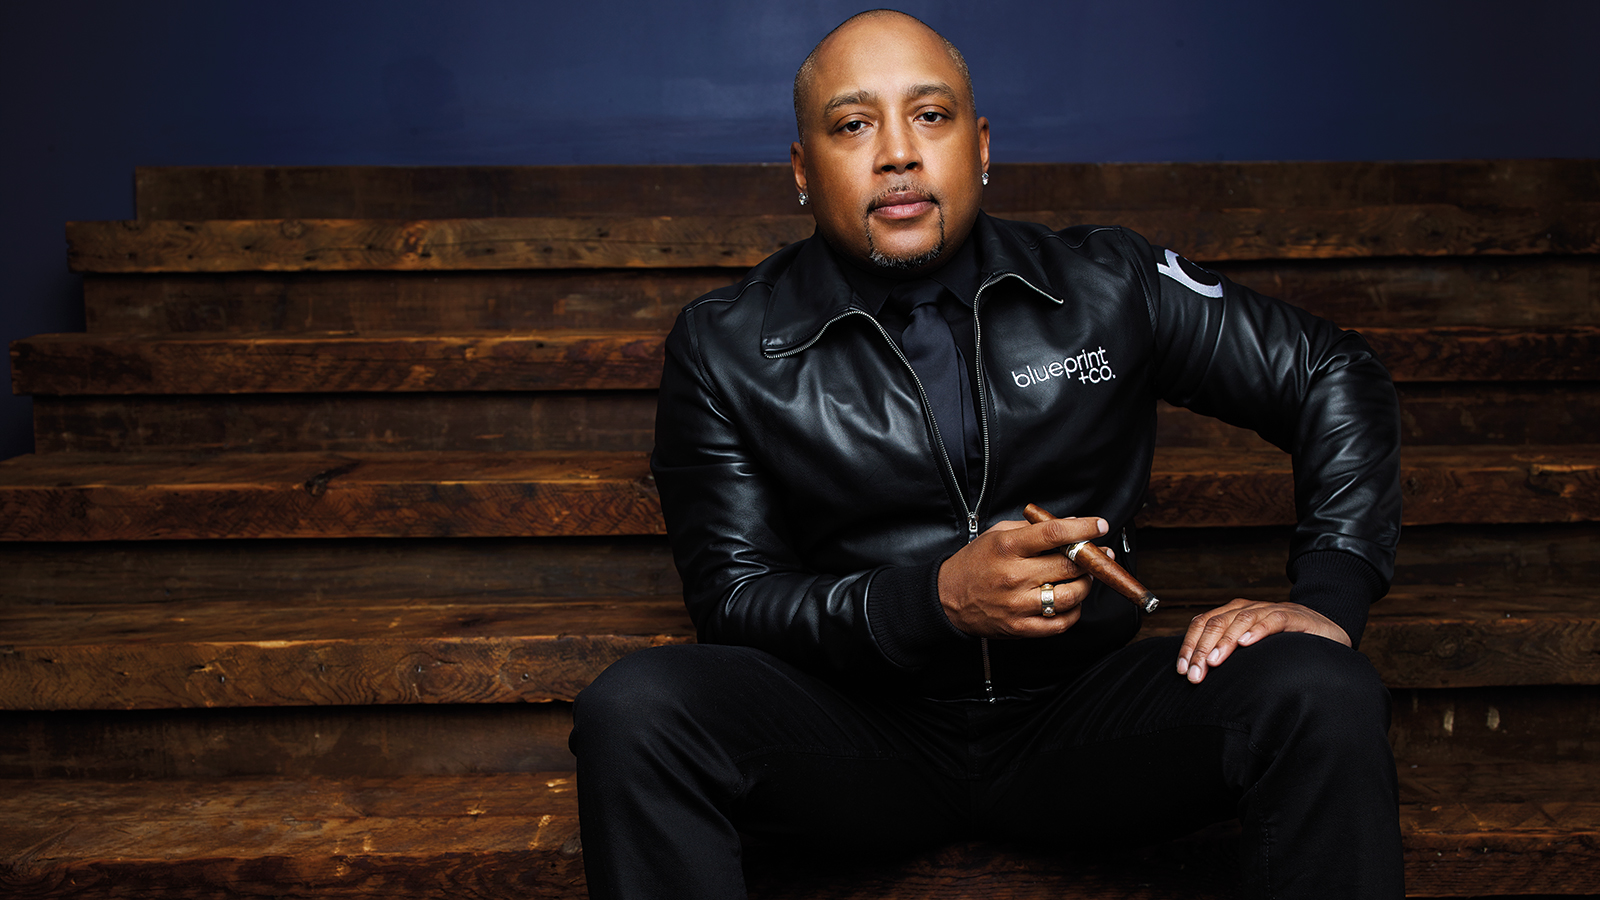 Daymond John in New York City wearing the logo of his latest business venture, blueprint + co.